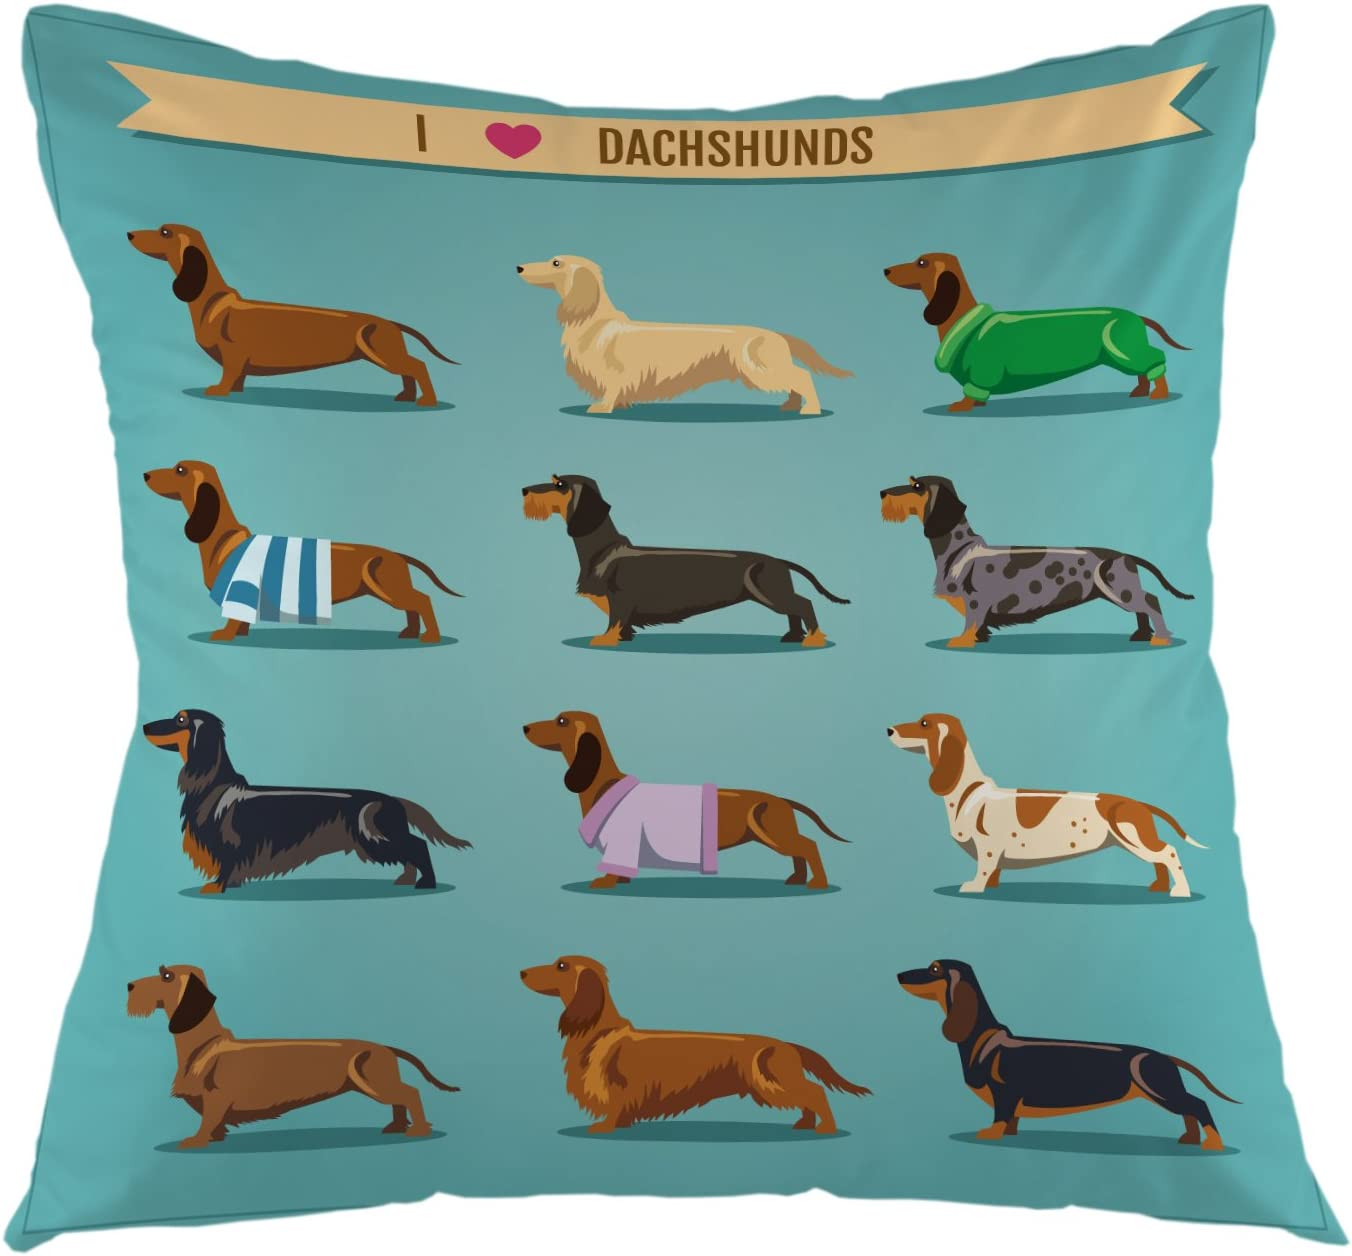 """oFloral Decorative Dachshund Pillow Cover Throw Pillow Case Square Cushion Cover for Sofa Couch Home Car Bedroom Living Room Decoration 18"""" x 18"""" Turquoise Black Brown"""